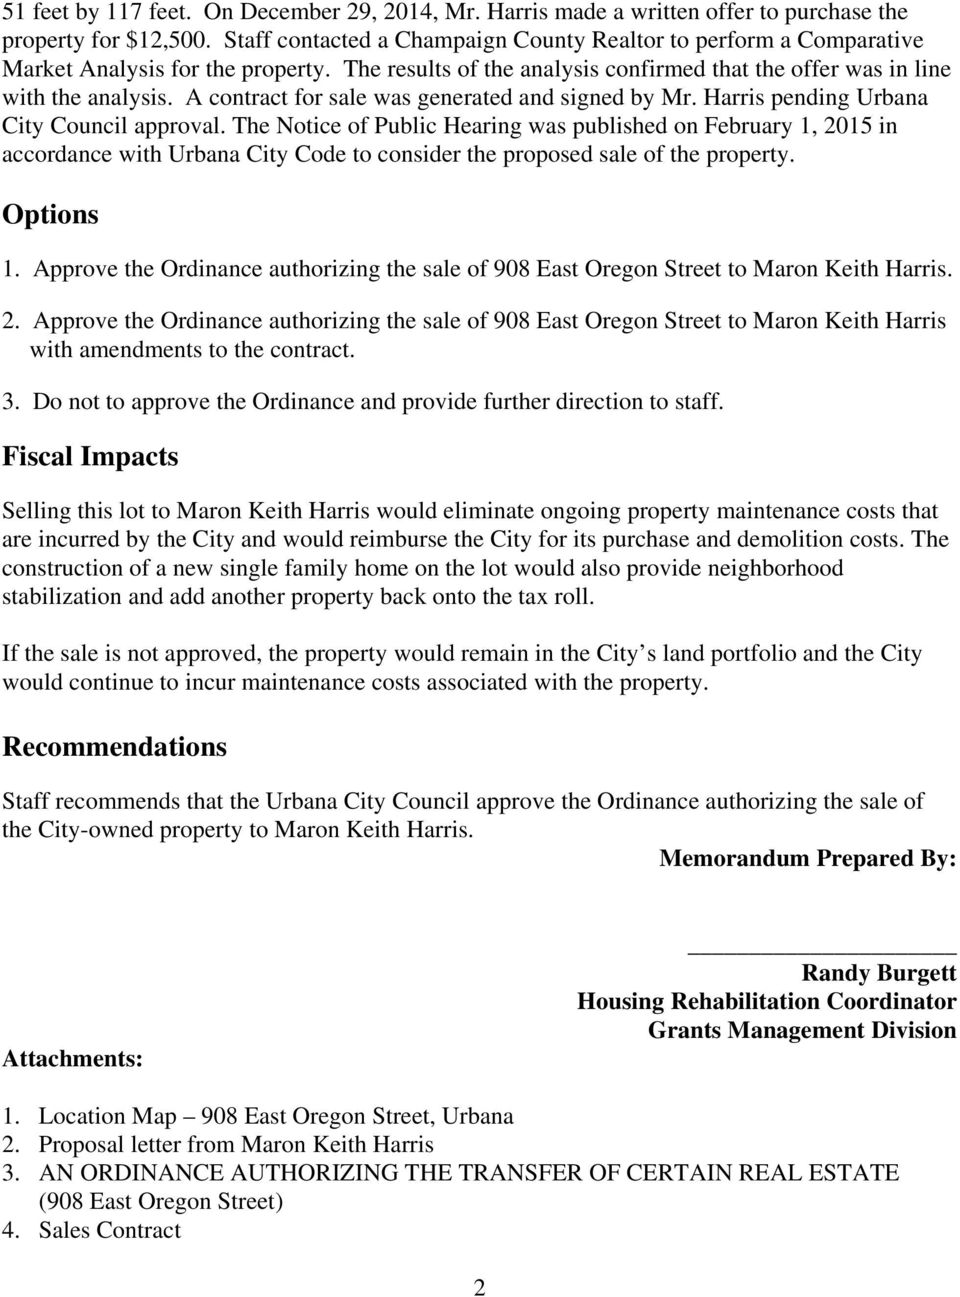 A contract for sale was generated and signed by Mr. Harris pending Urbana City Council approval.